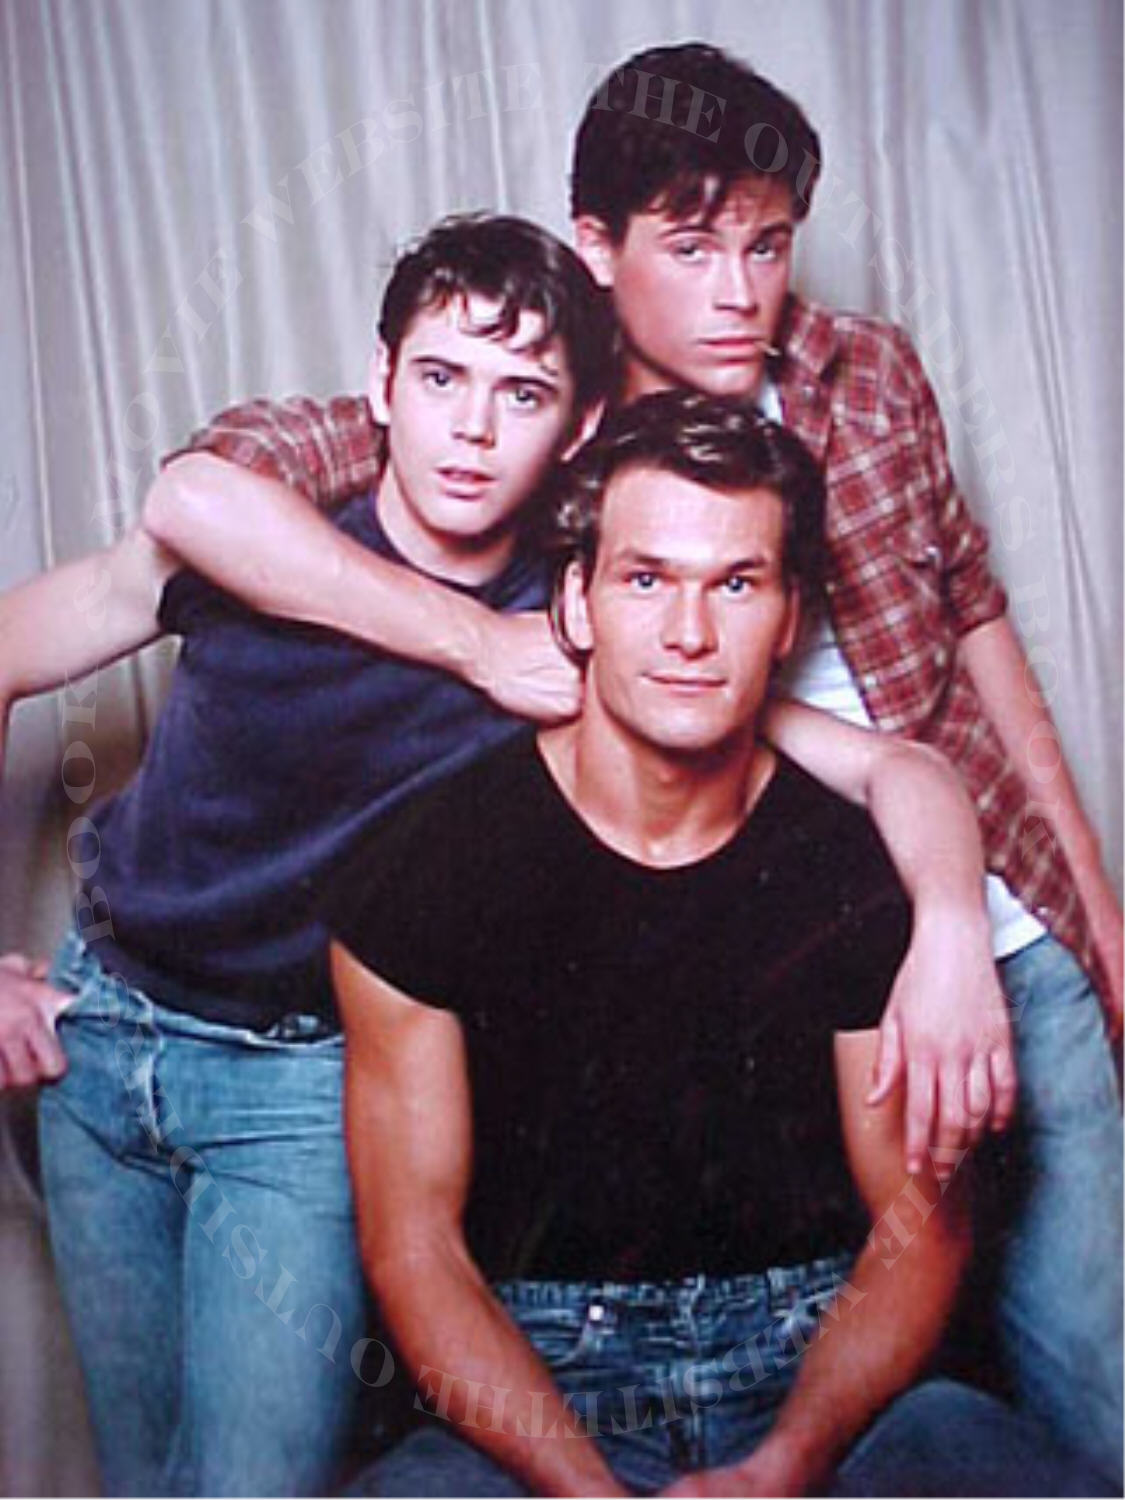 The Outsiders Rob Lowe Shower The Curtis Family imag...